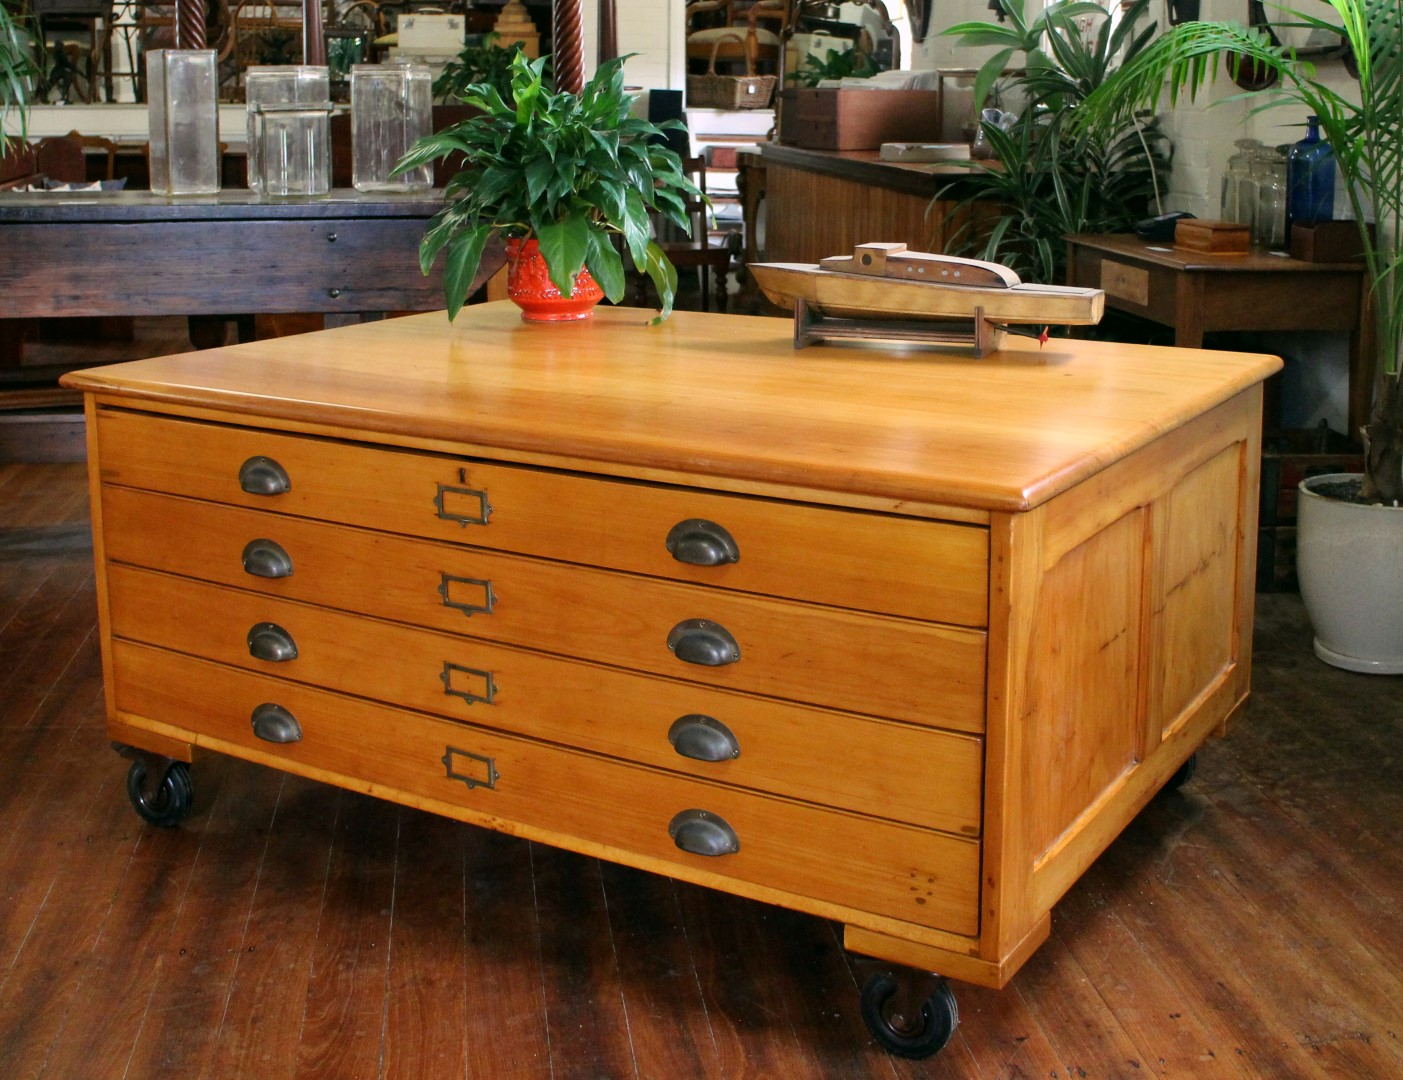 A great set of solid New Zealand Kauri Map /Plan Drawers ,circa 1900.  Made from a fine cut of of glowing golden New Zealand Kaurithese drawers are very large in size & all slide in & out beautifully . Raised on lockable castors for easy movement .  1600mm wide x 1130mm deep x 750mm height  Drawer internal measurements ; 1445mm widex 1020mm deep x 90mm high  $5850